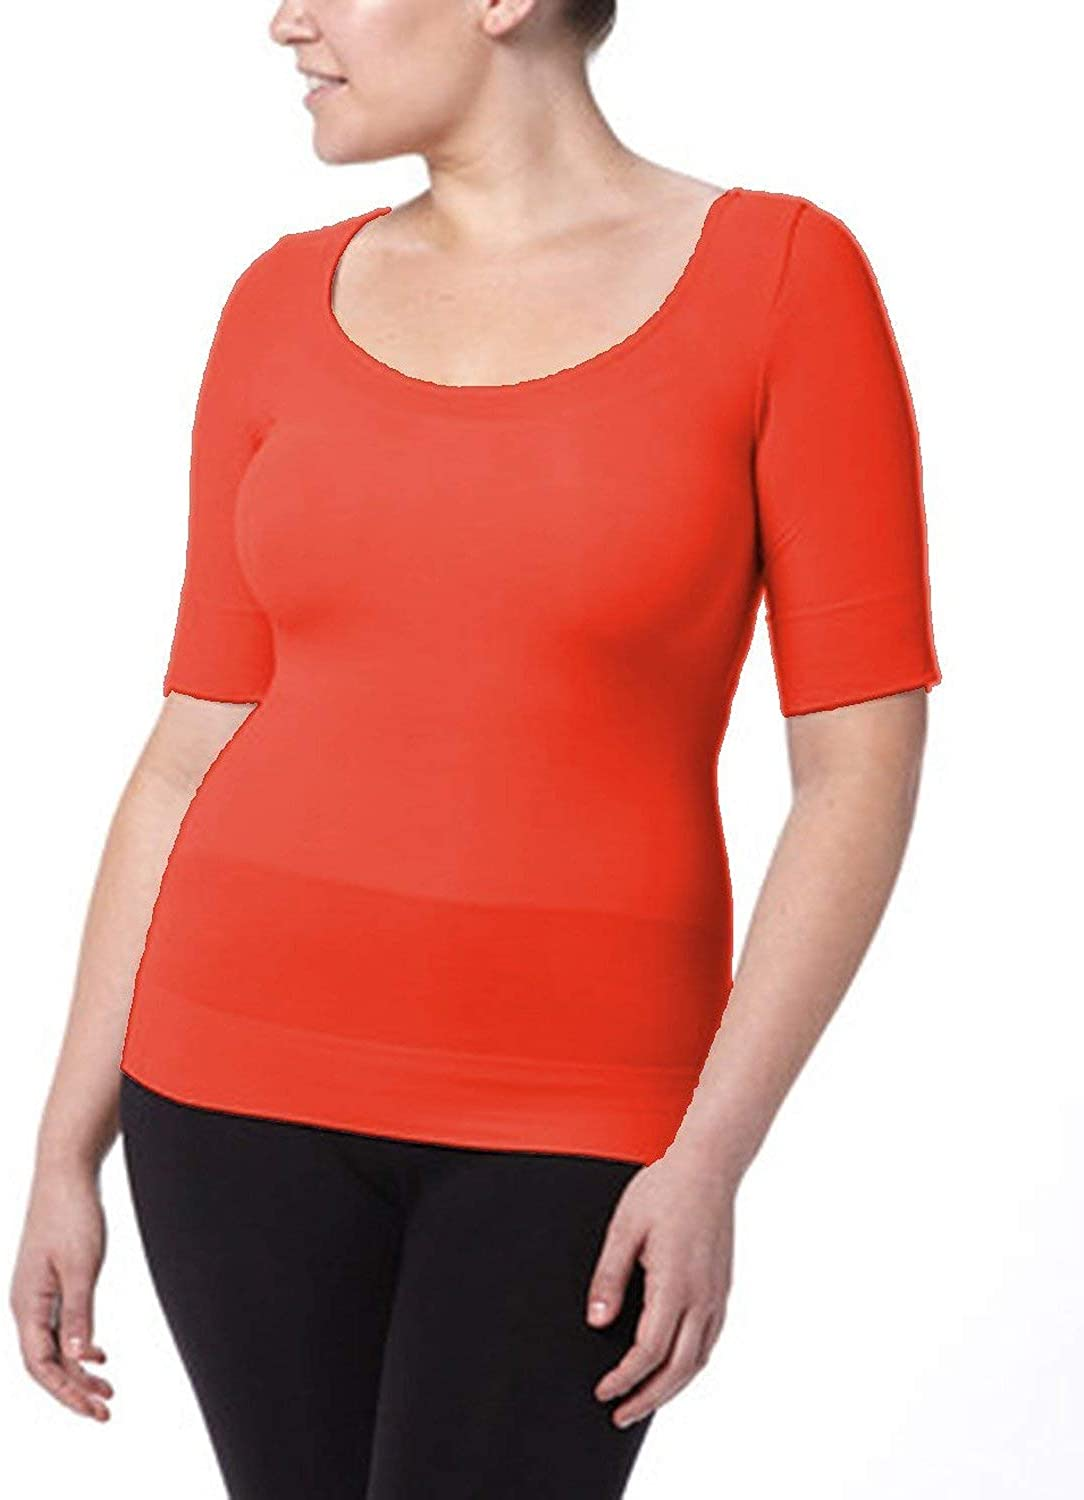 SPANX On Top and in Control - Elbow Sleeve Shaping Top